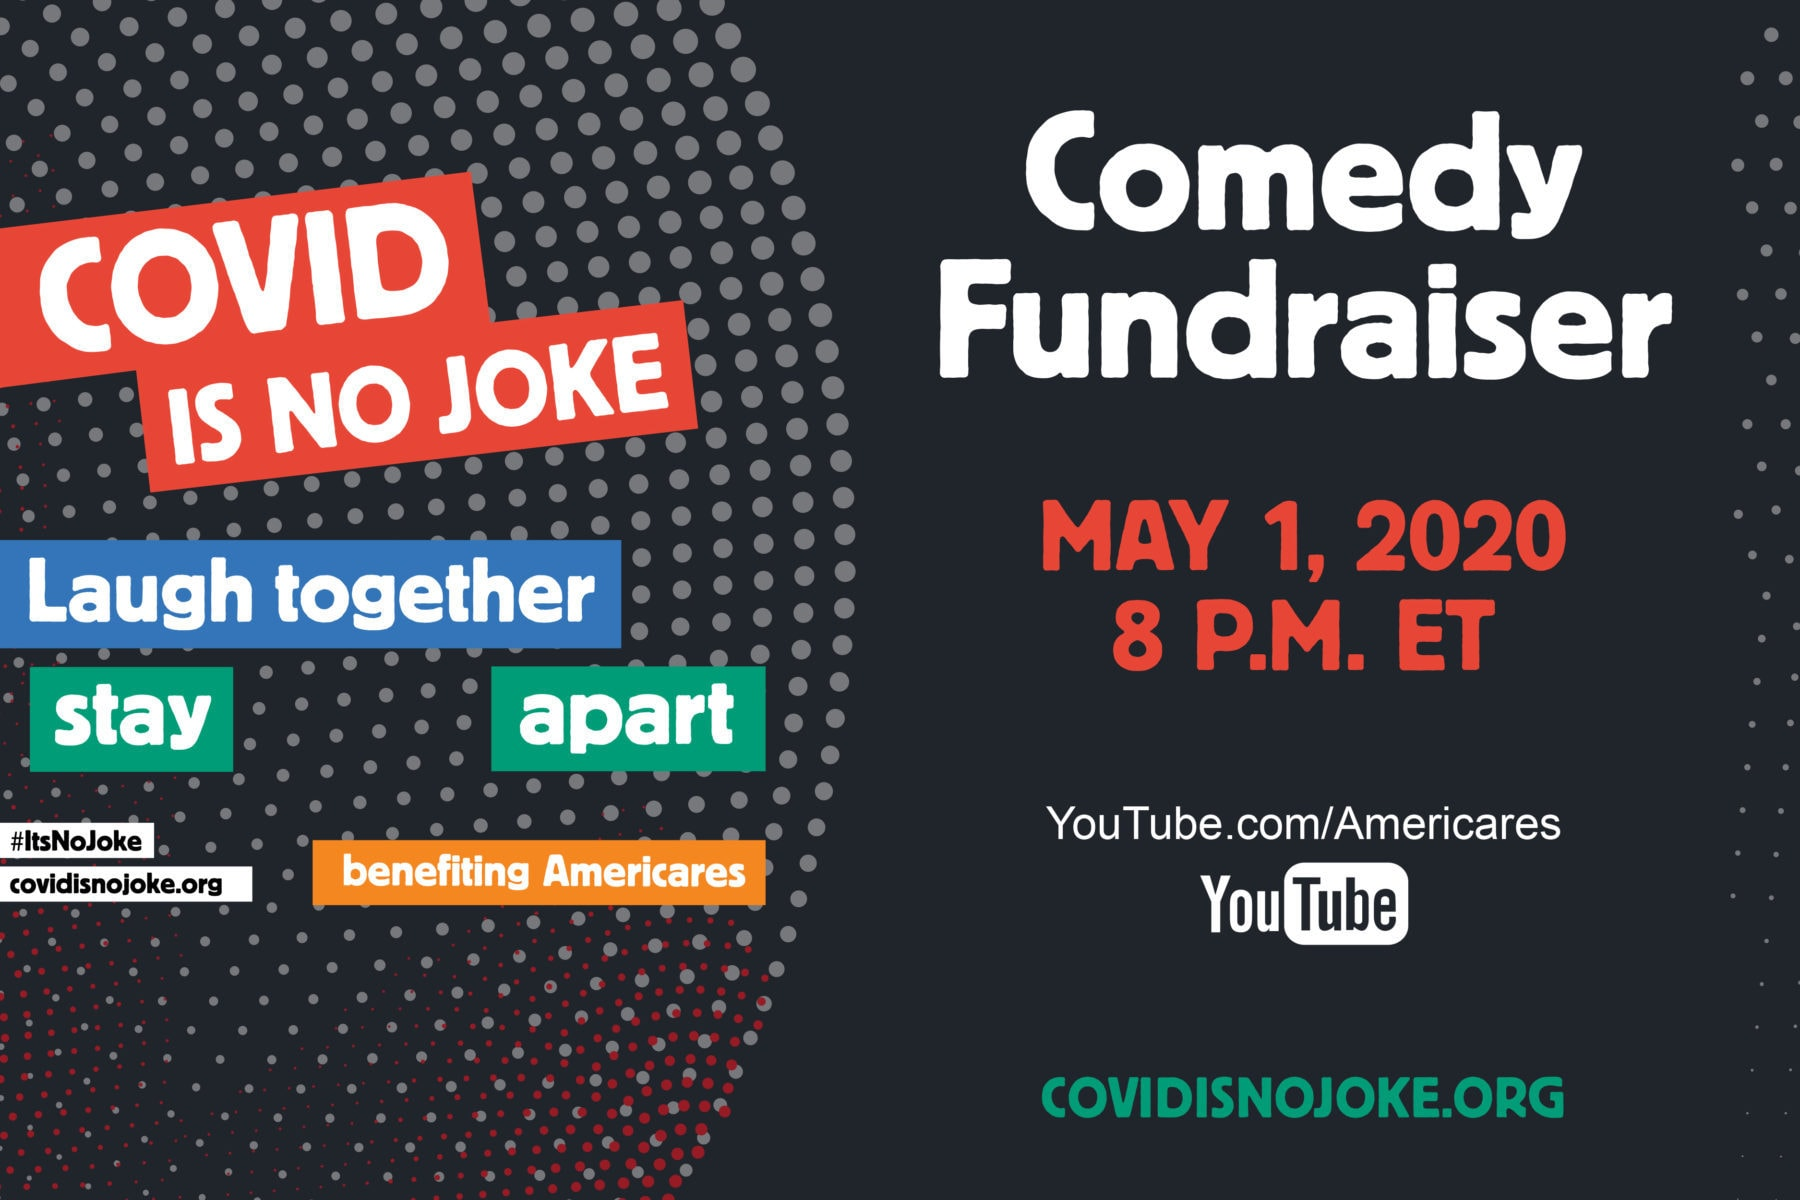 The COVID IS NO JOKE comedy show will be a night of levity, laughter and community in support of frontline health workers—the heroes of the COVID-19 pandemic. The show will air LIVE on covidisnojoke.org and Americares YouTube channel at 8 p.m. EDT, benefitting Americares COVID-19 response